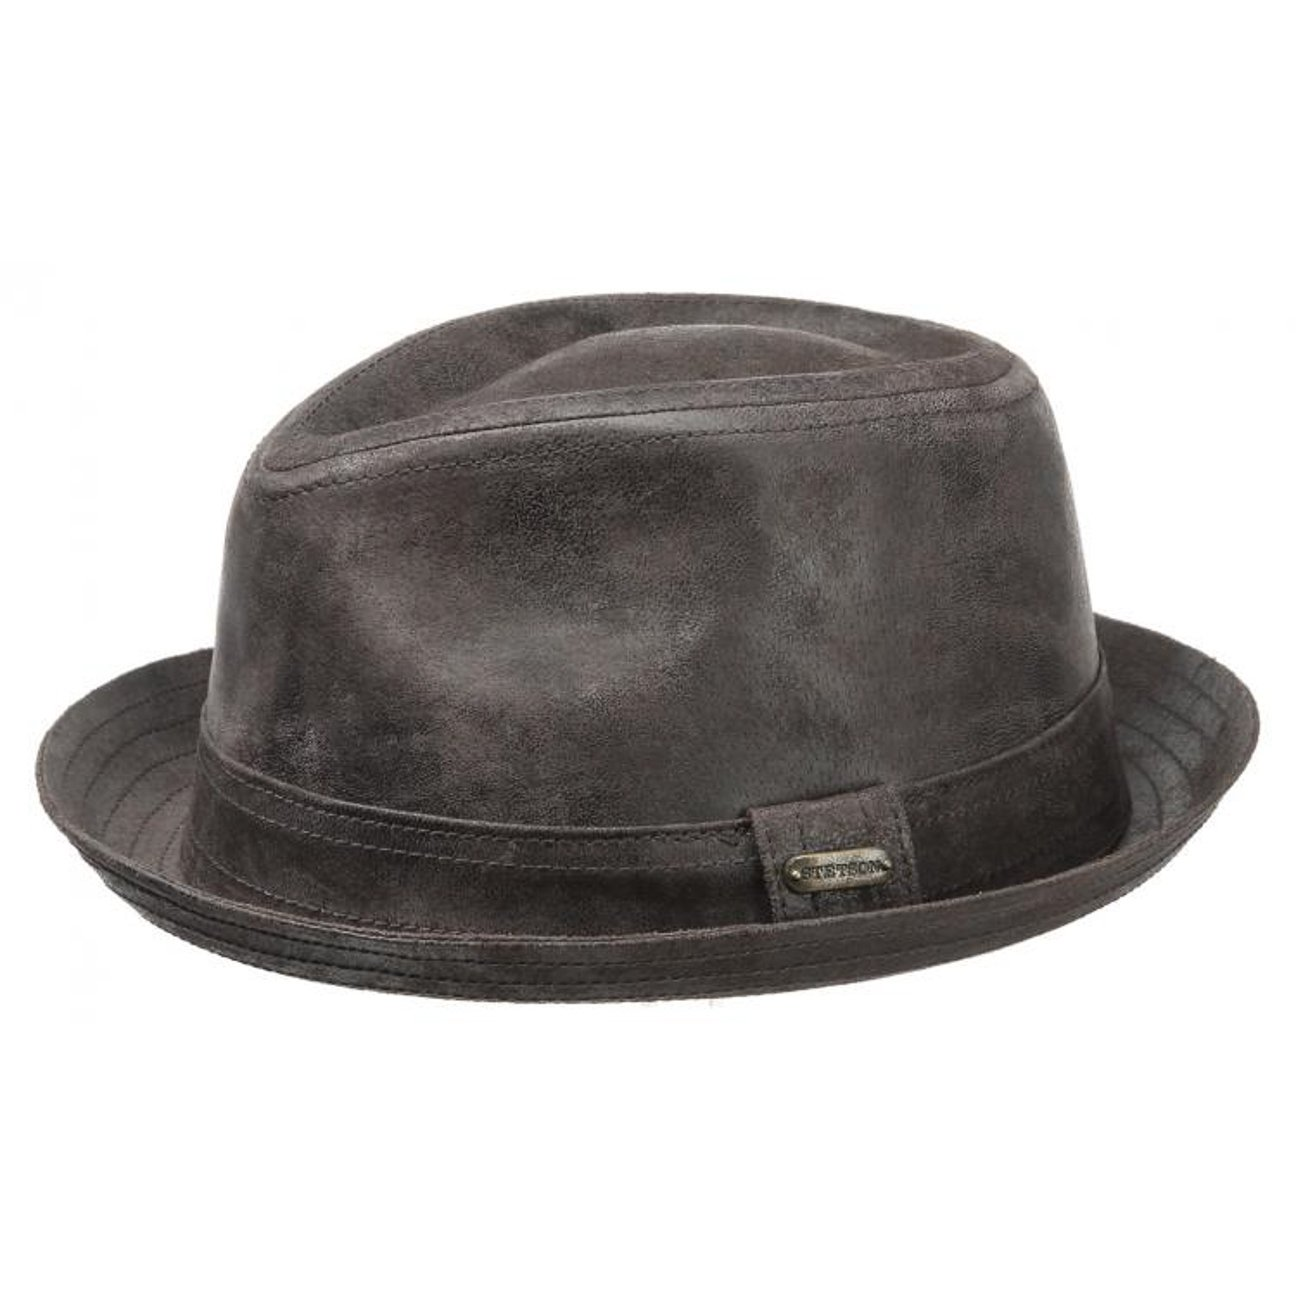 Stetson Radcliff Leather Player trilby hat